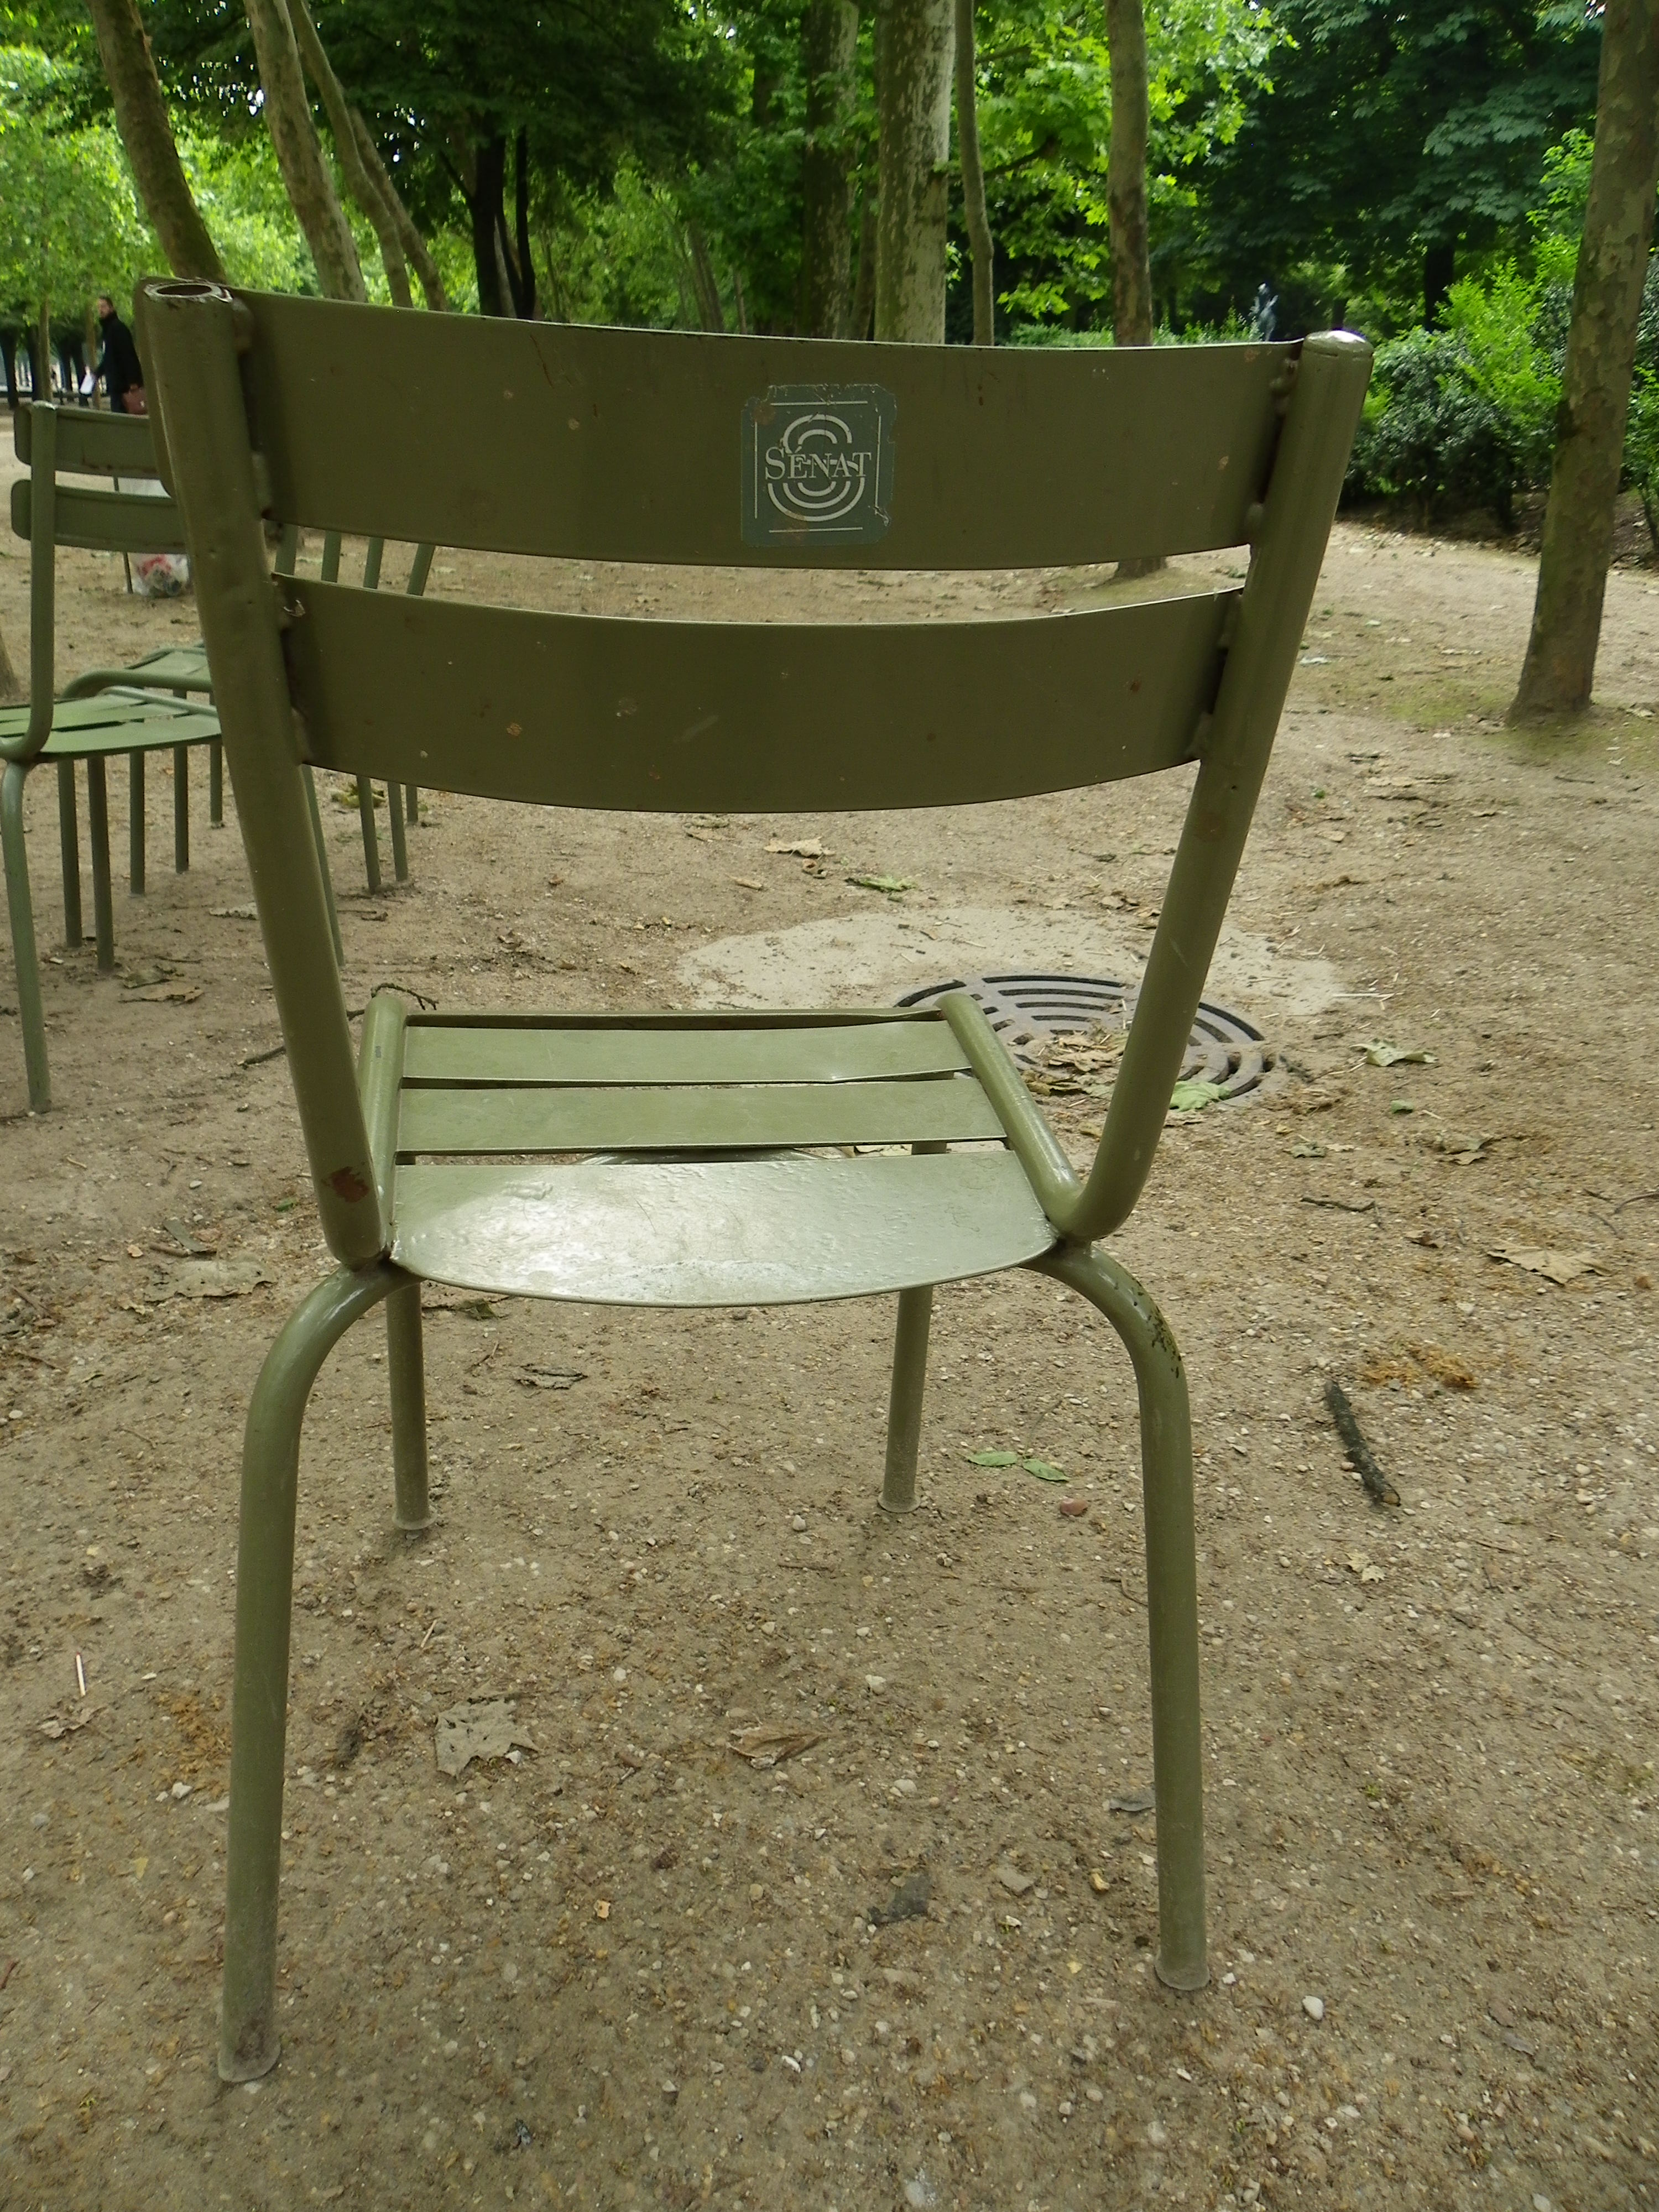 file chaise du jardin du luxembourg avec le logo du s nat jpg wikimedia commons. Black Bedroom Furniture Sets. Home Design Ideas